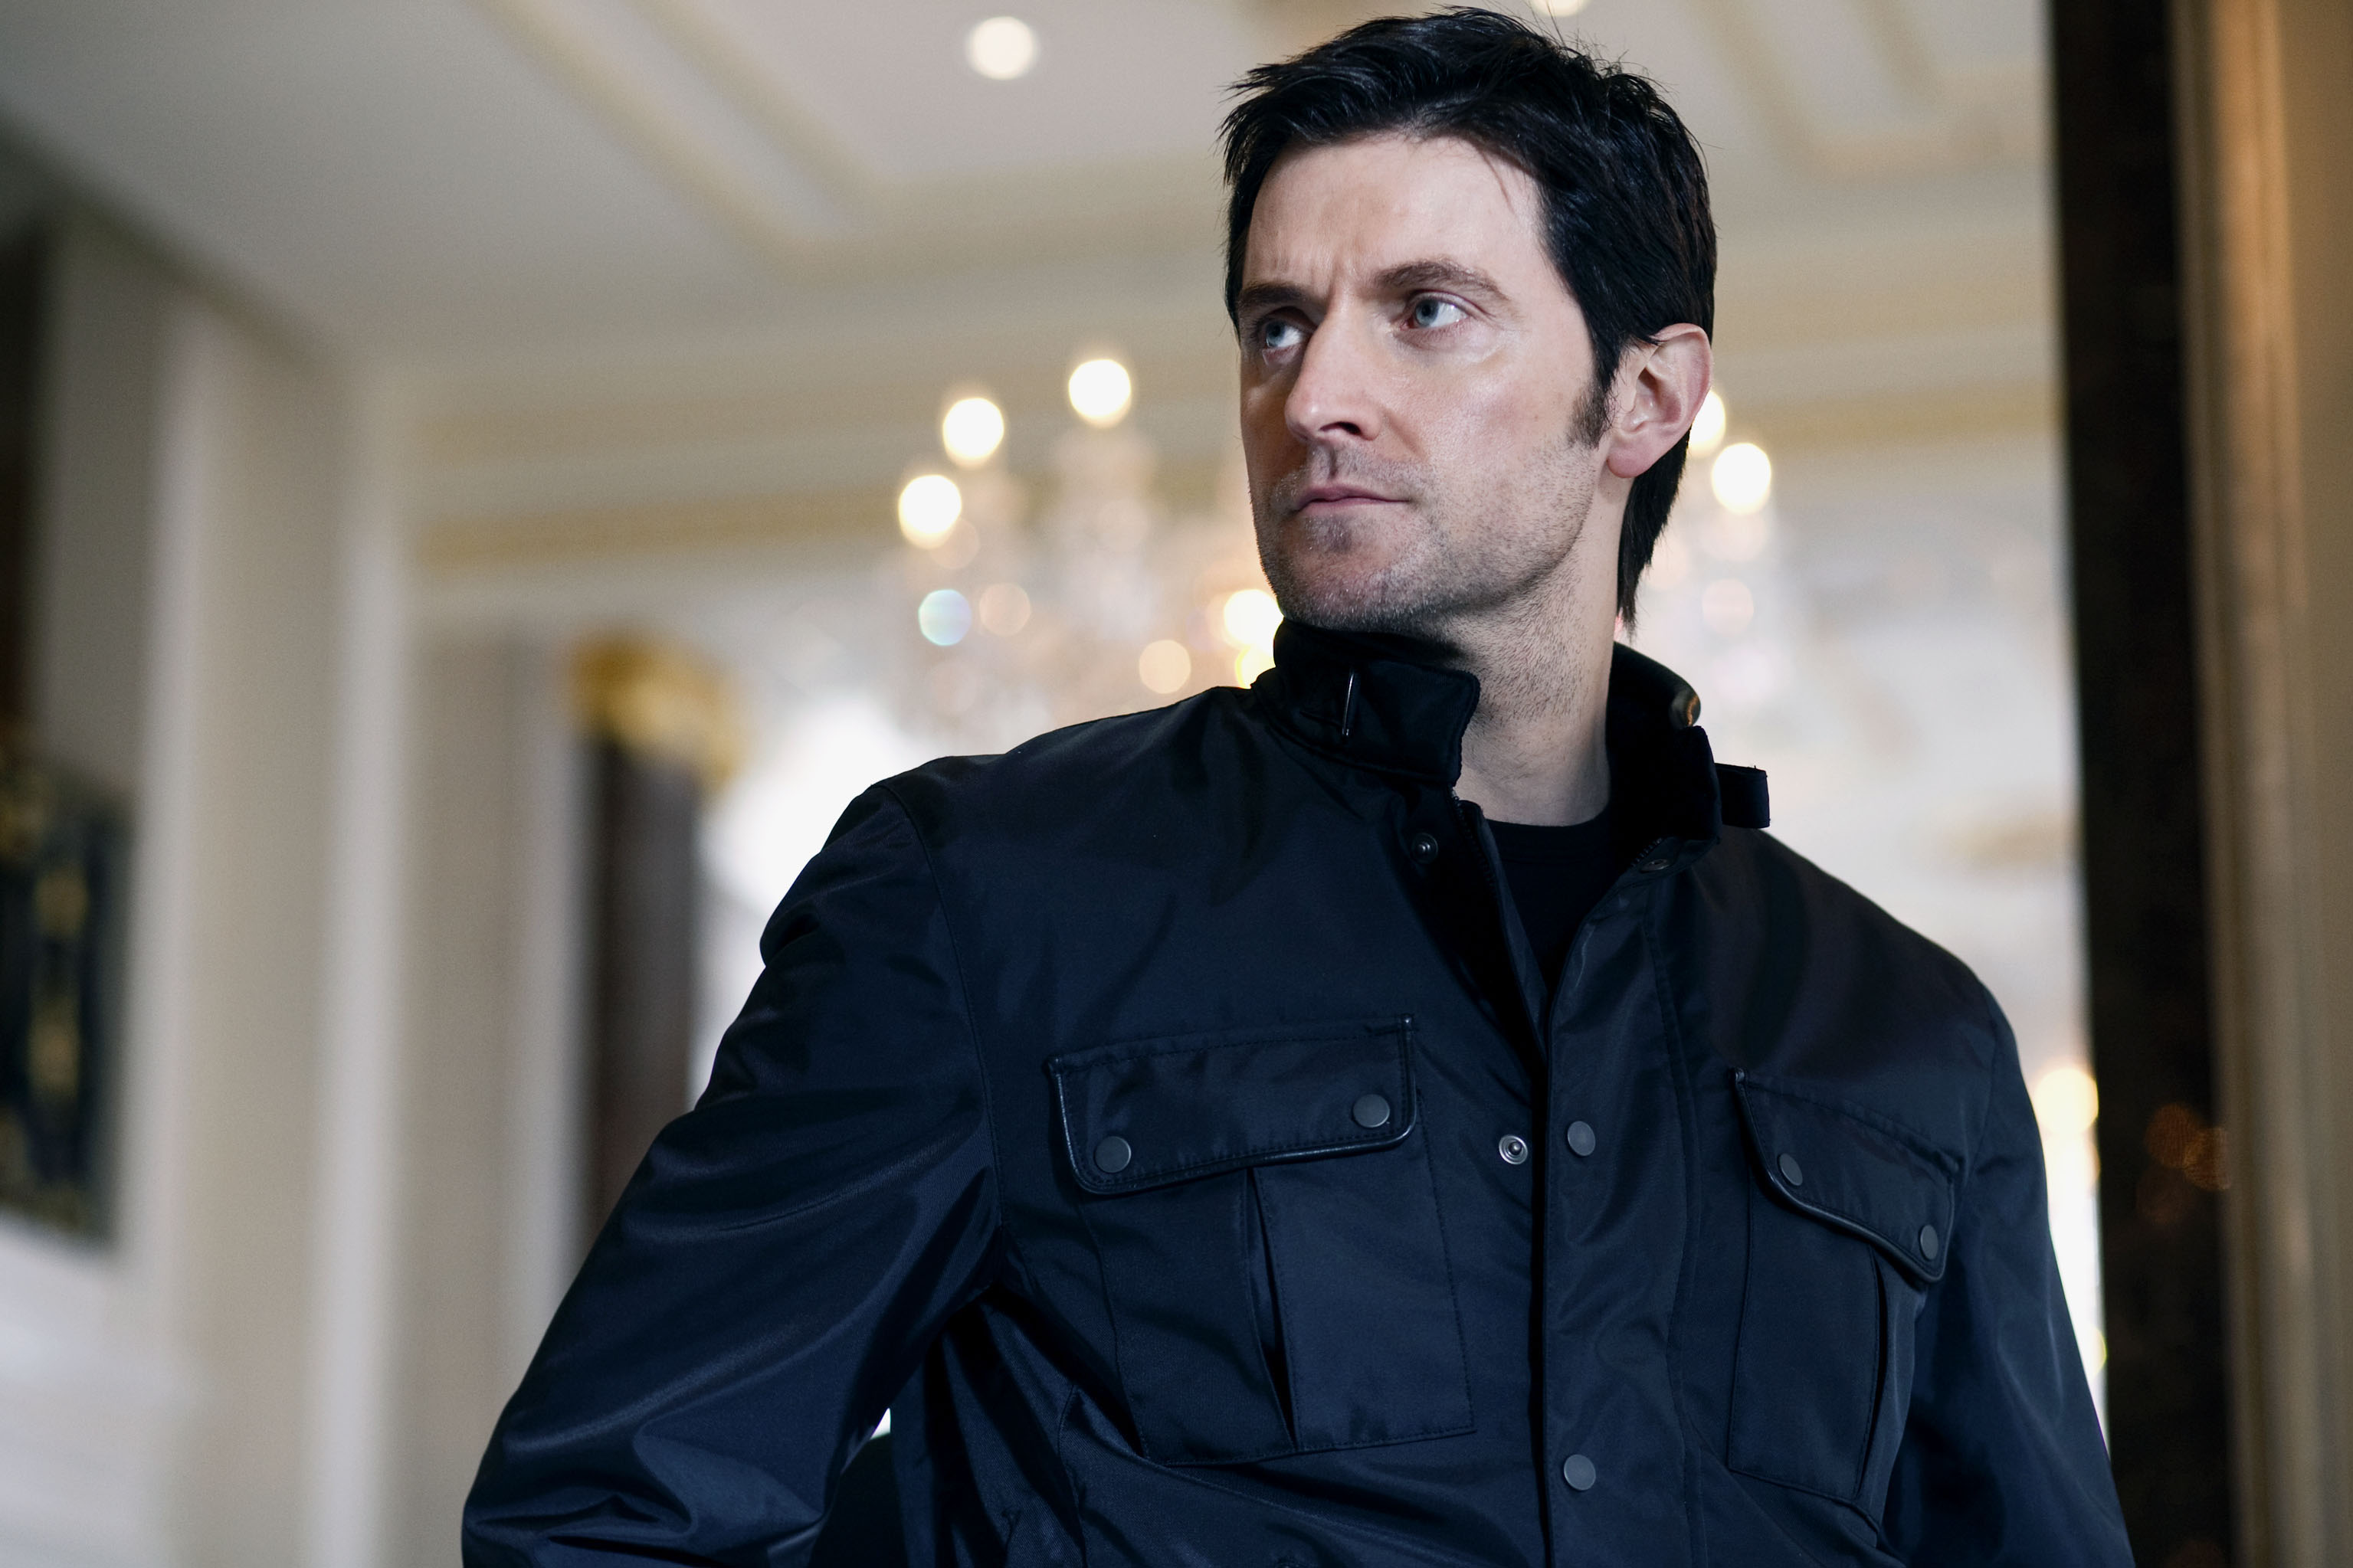 The hobbit star richard armitage signs on for killer role in nbc 39 s hannibal blastr - Hannibal tv series actors ...